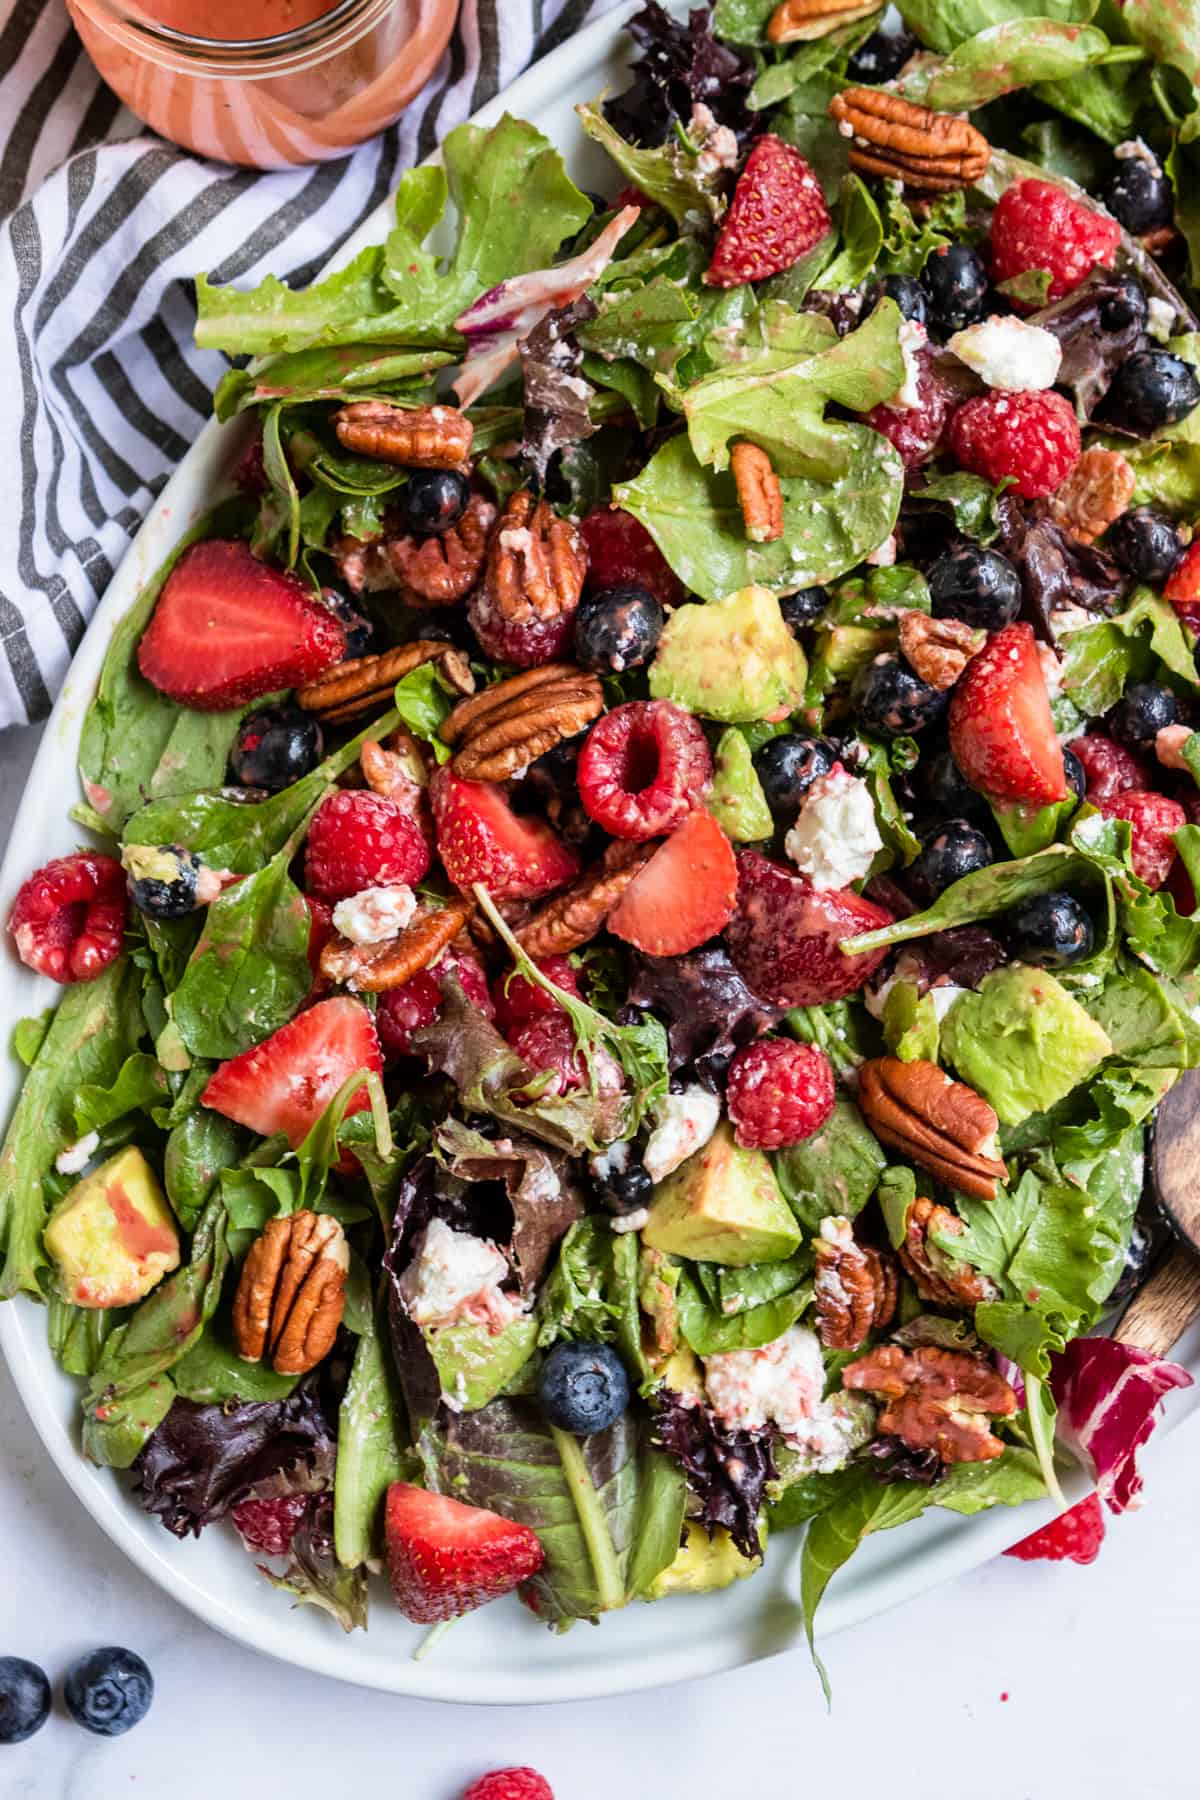 Overhead view of mixed green salad with berries.